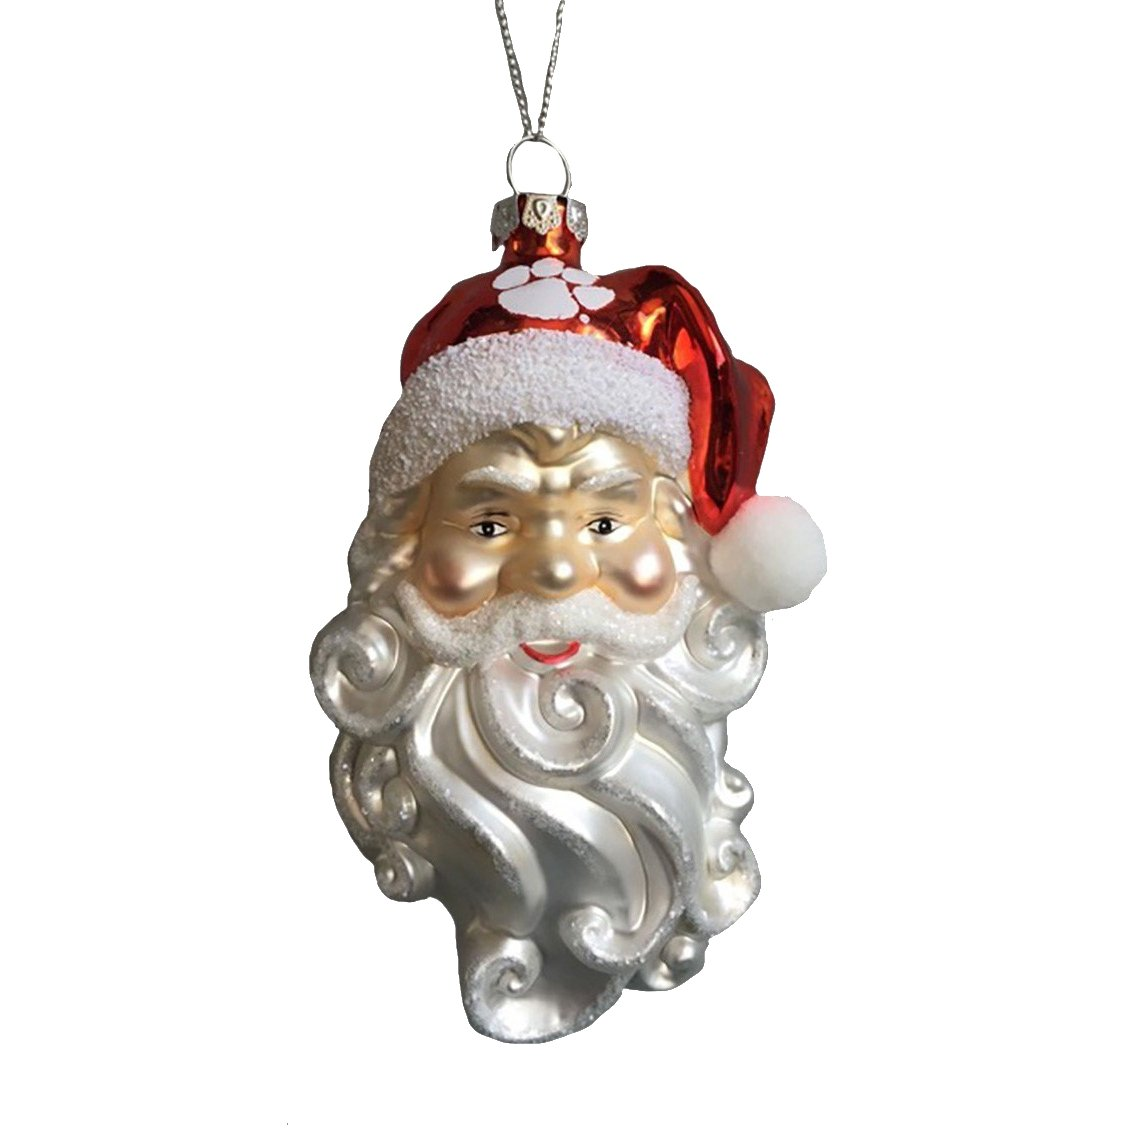 "6"" Santa Glass Ornament - Mr. Knickerbocker"